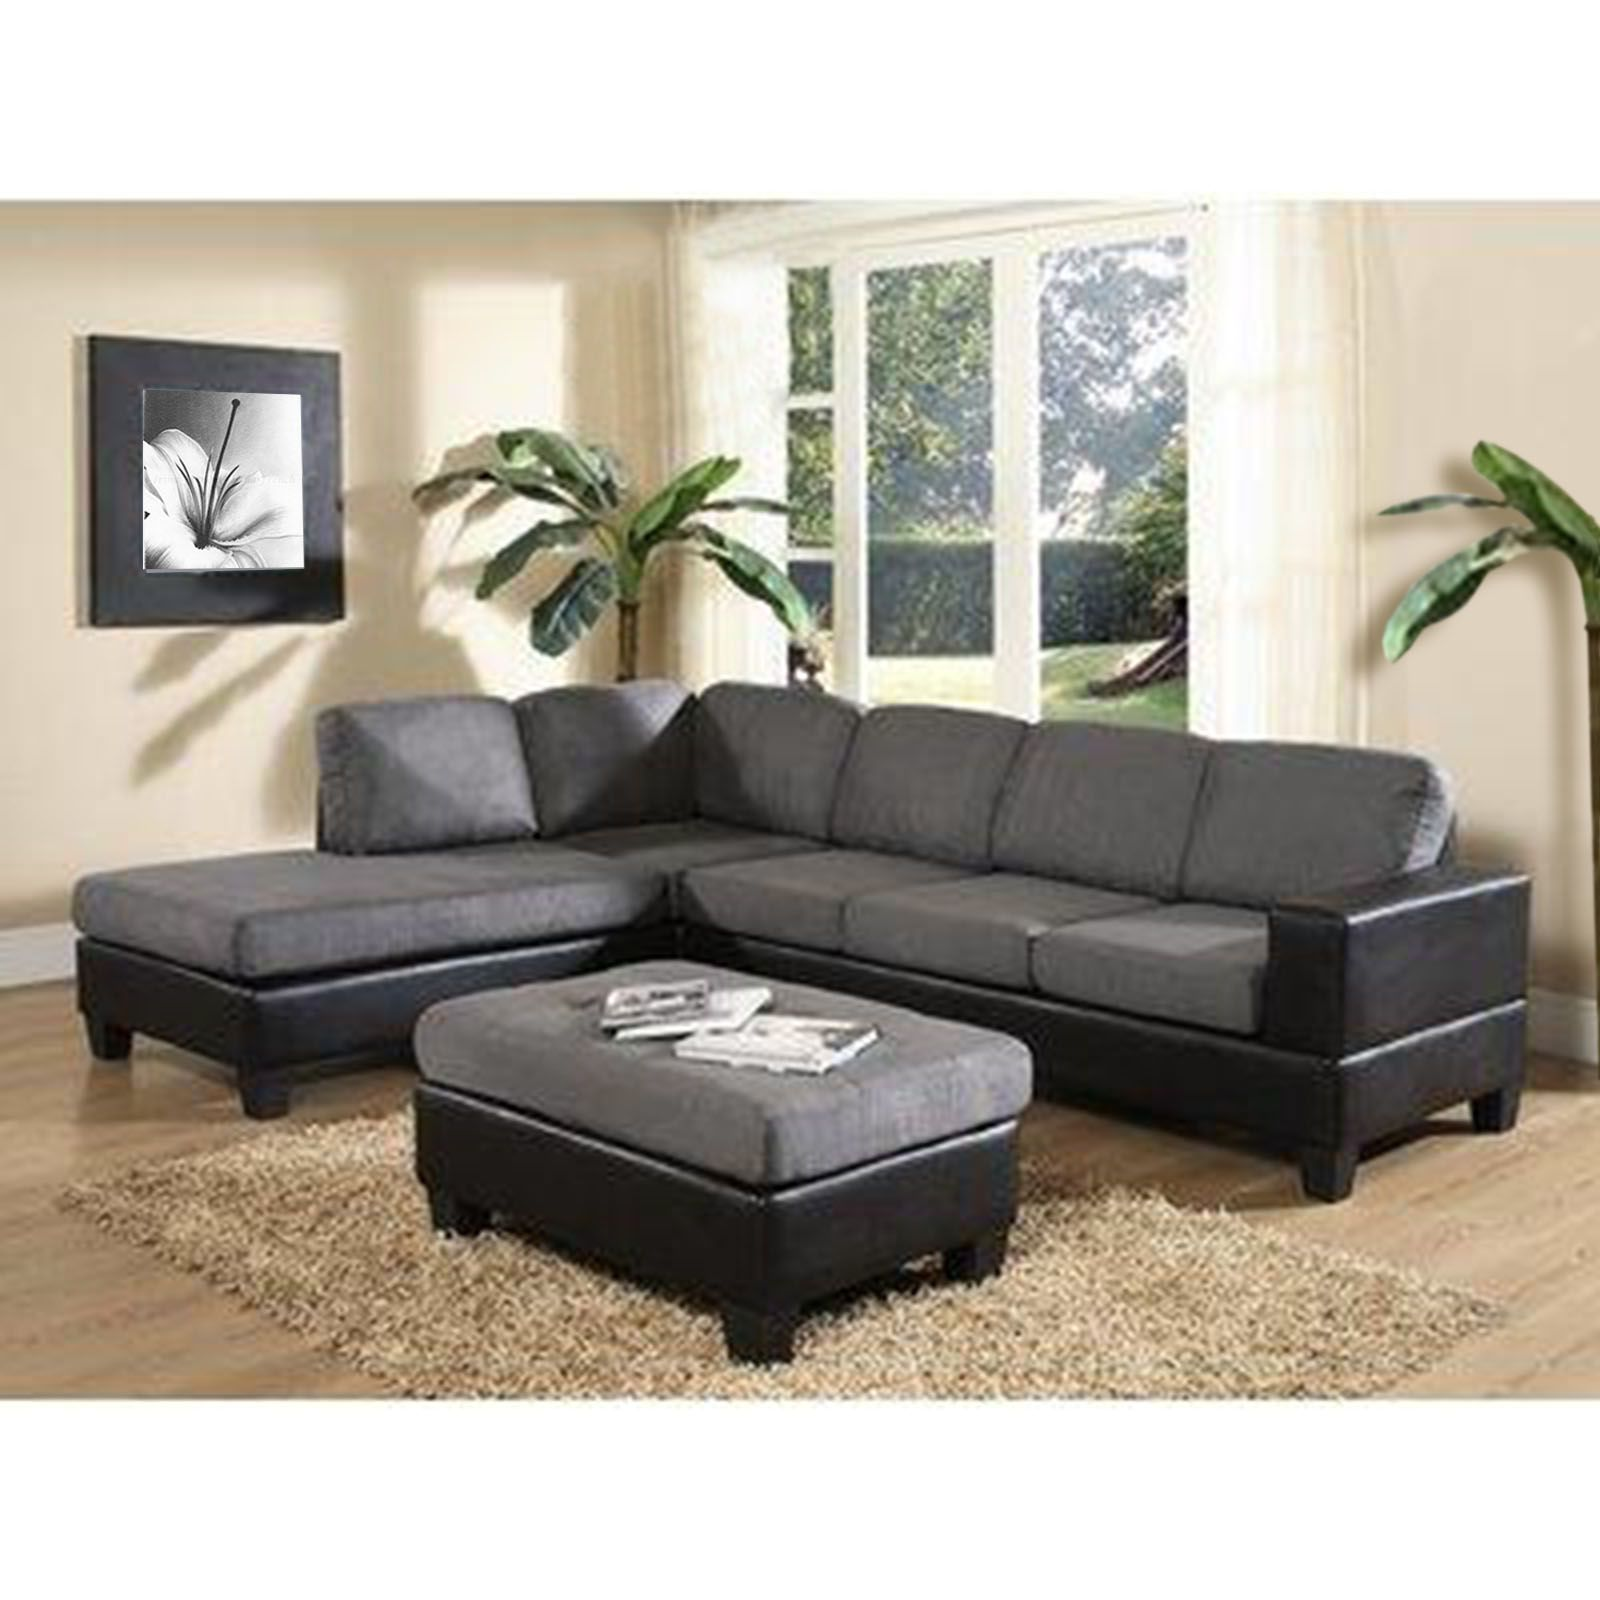 Venetian Worldwide Dallin Sectional Sofa Grey Ottoman $469 79